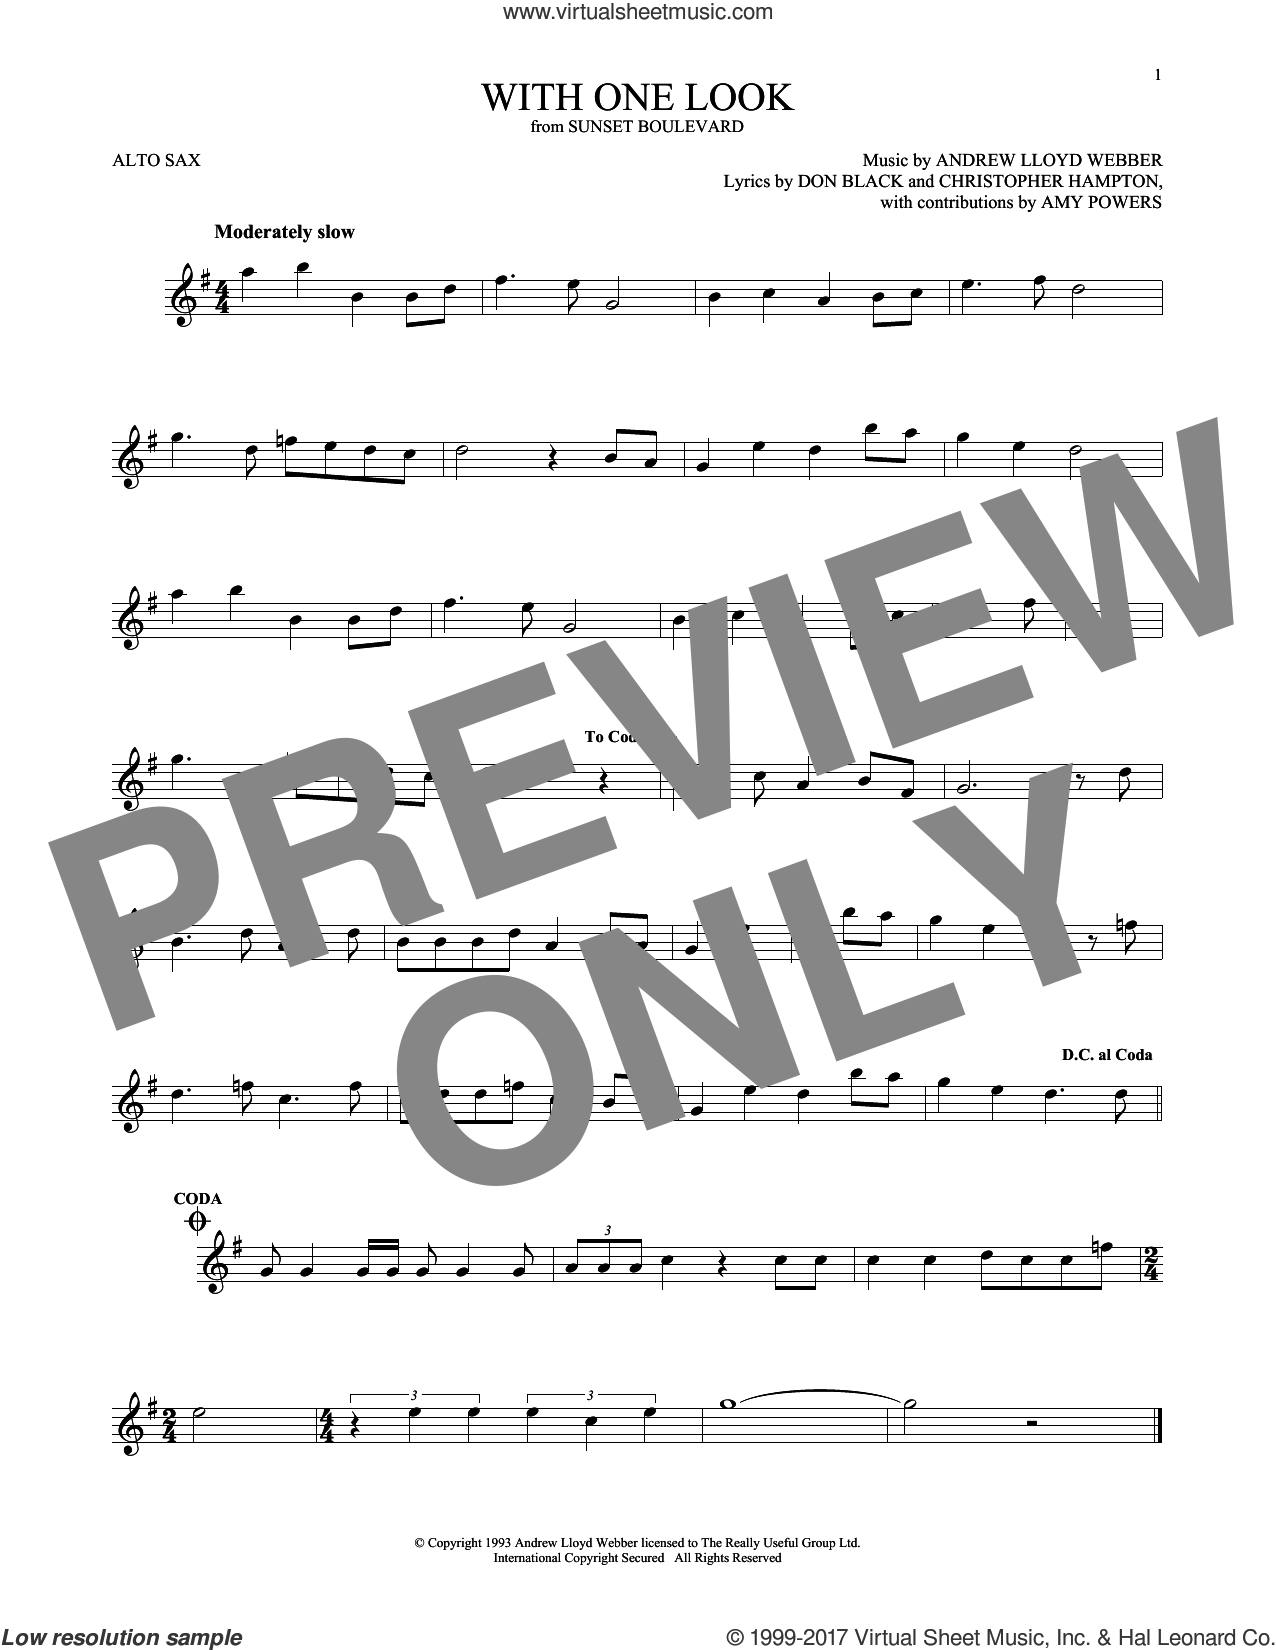 With One Look sheet music for alto saxophone solo by Andrew Lloyd Webber, Christopher Hampton and Don Black, intermediate skill level